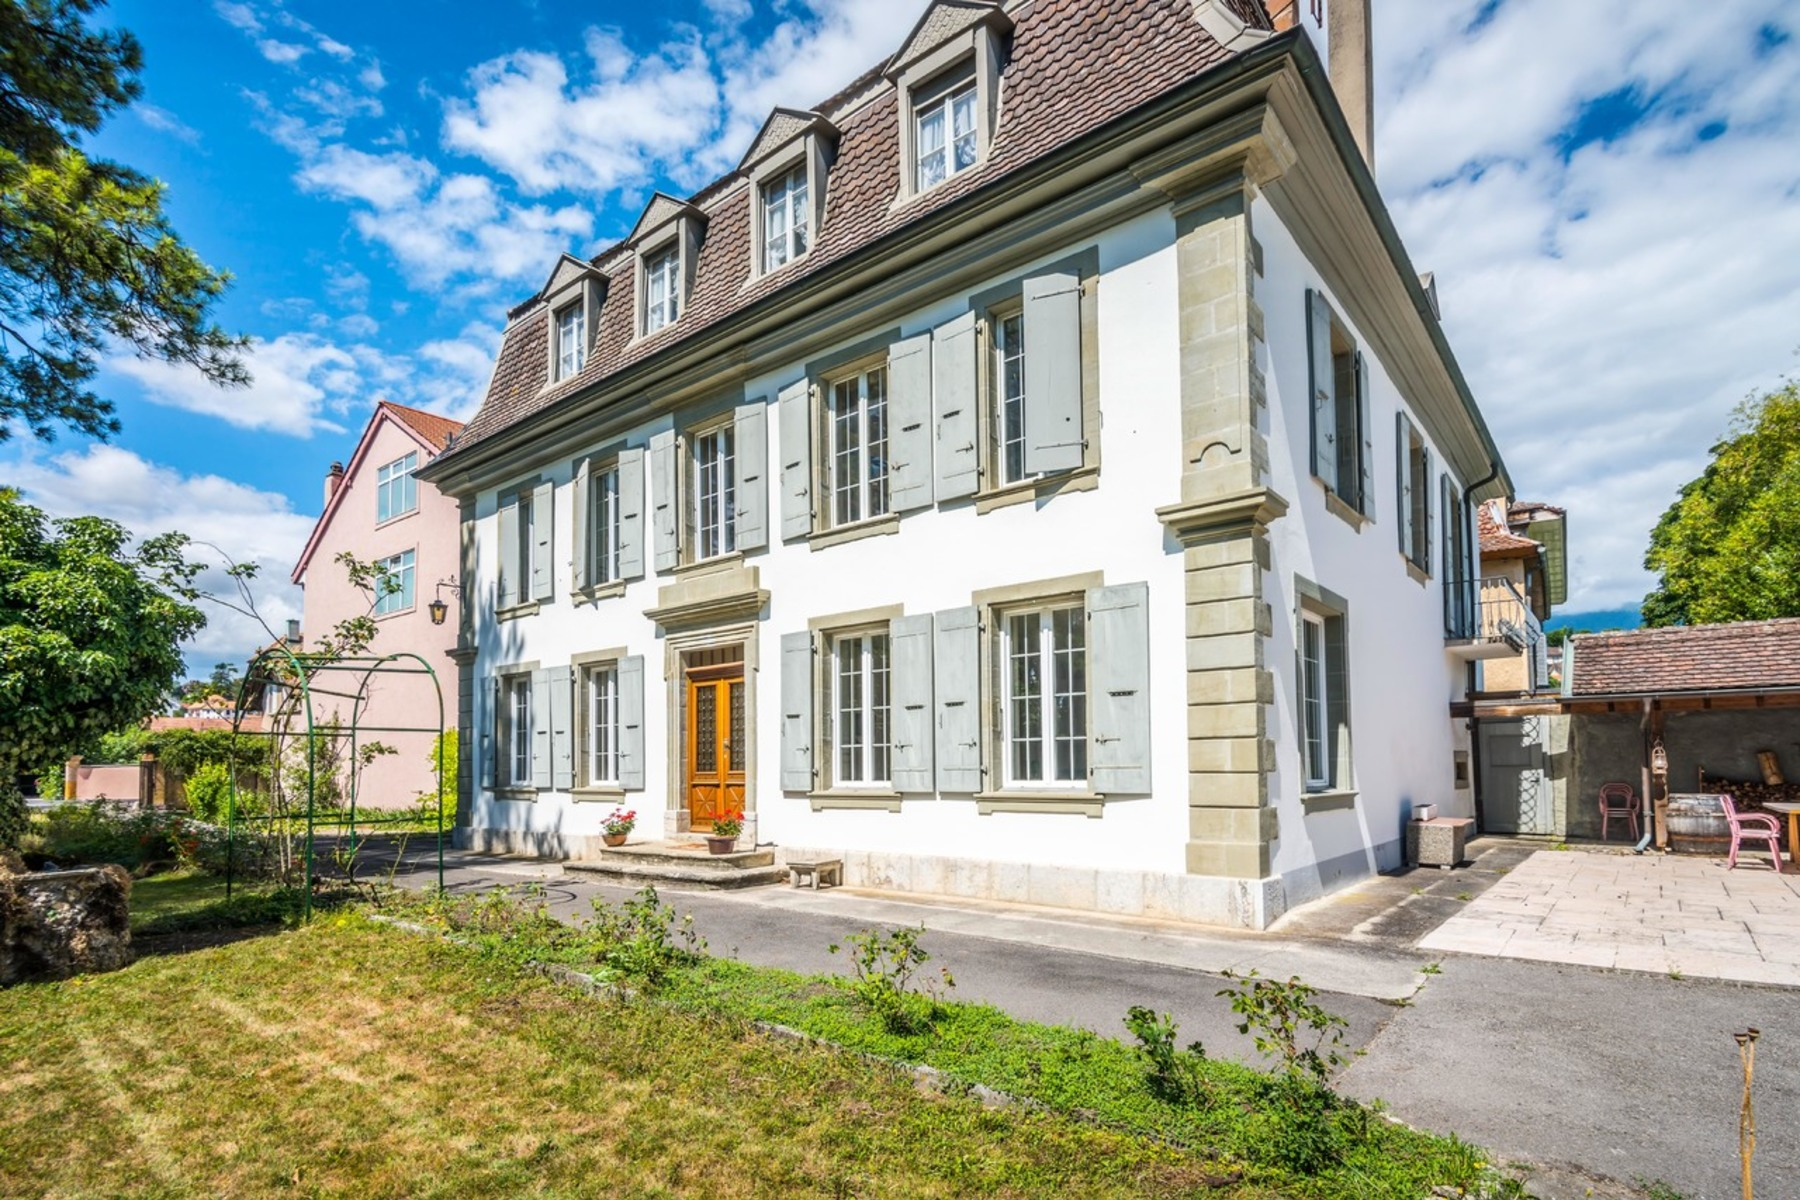 Single Family Home for Sale at Mansion with attractive riverside grounds Orbe, Orbe, Vaud, 1350 Switzerland